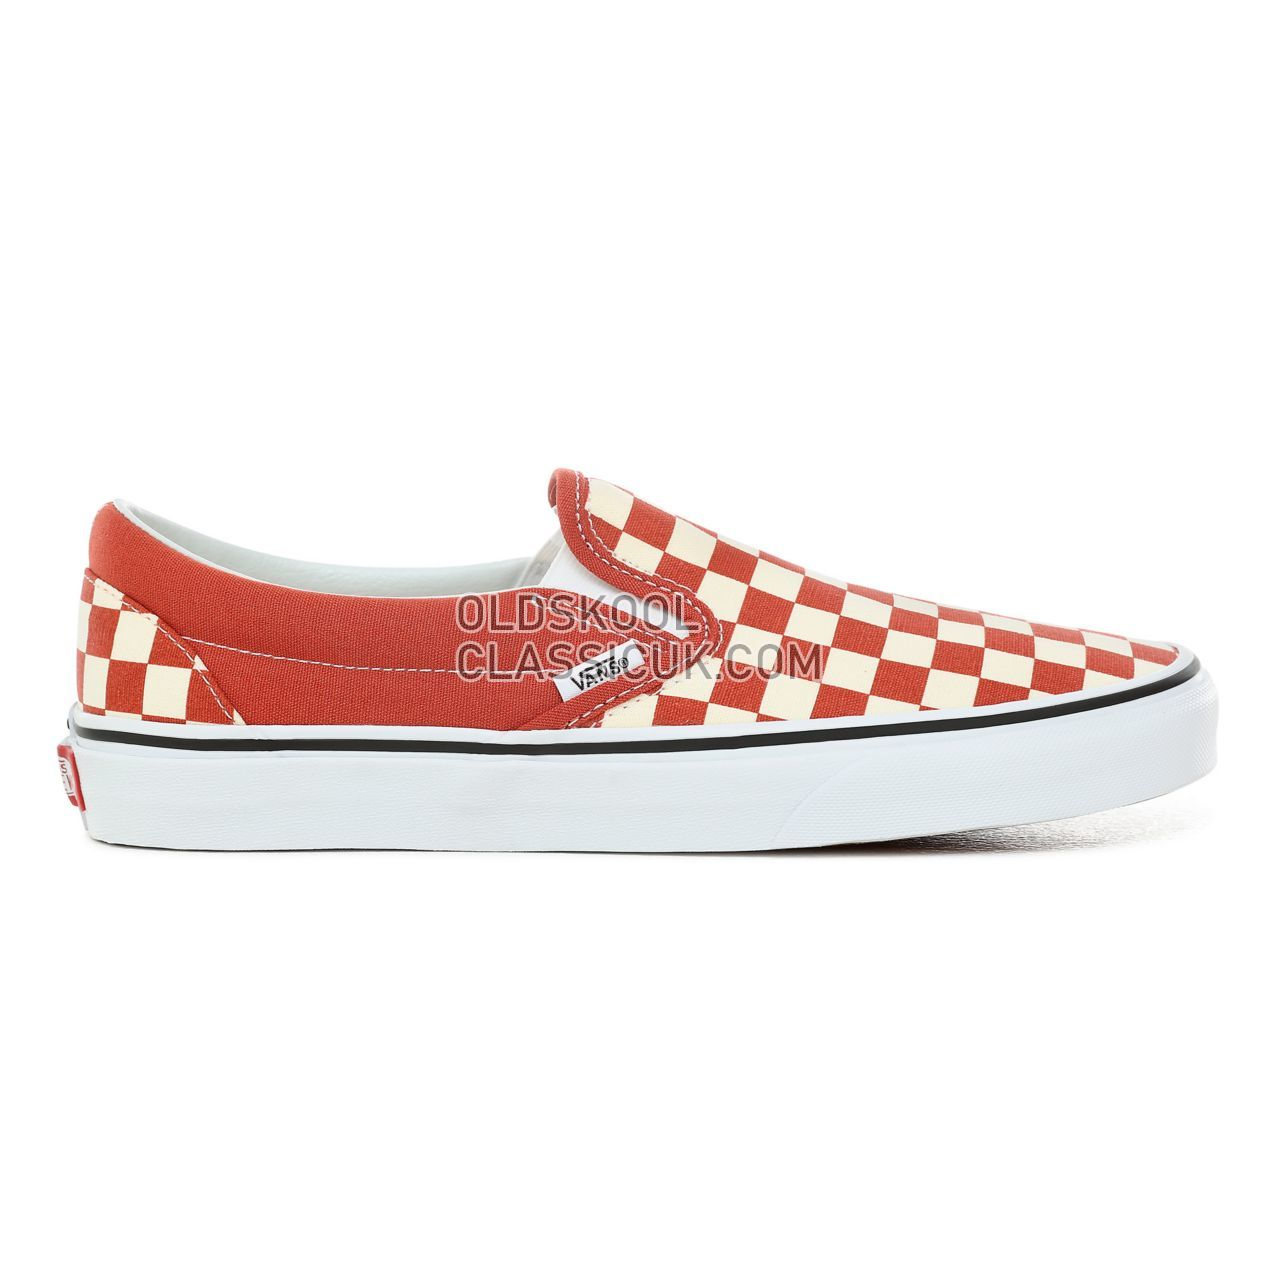 Vans Checkerboard Classic Slip-On Sneakers Mens (Checkerboard) Hot Sauce/True White VN0A38F7ULL Shoes